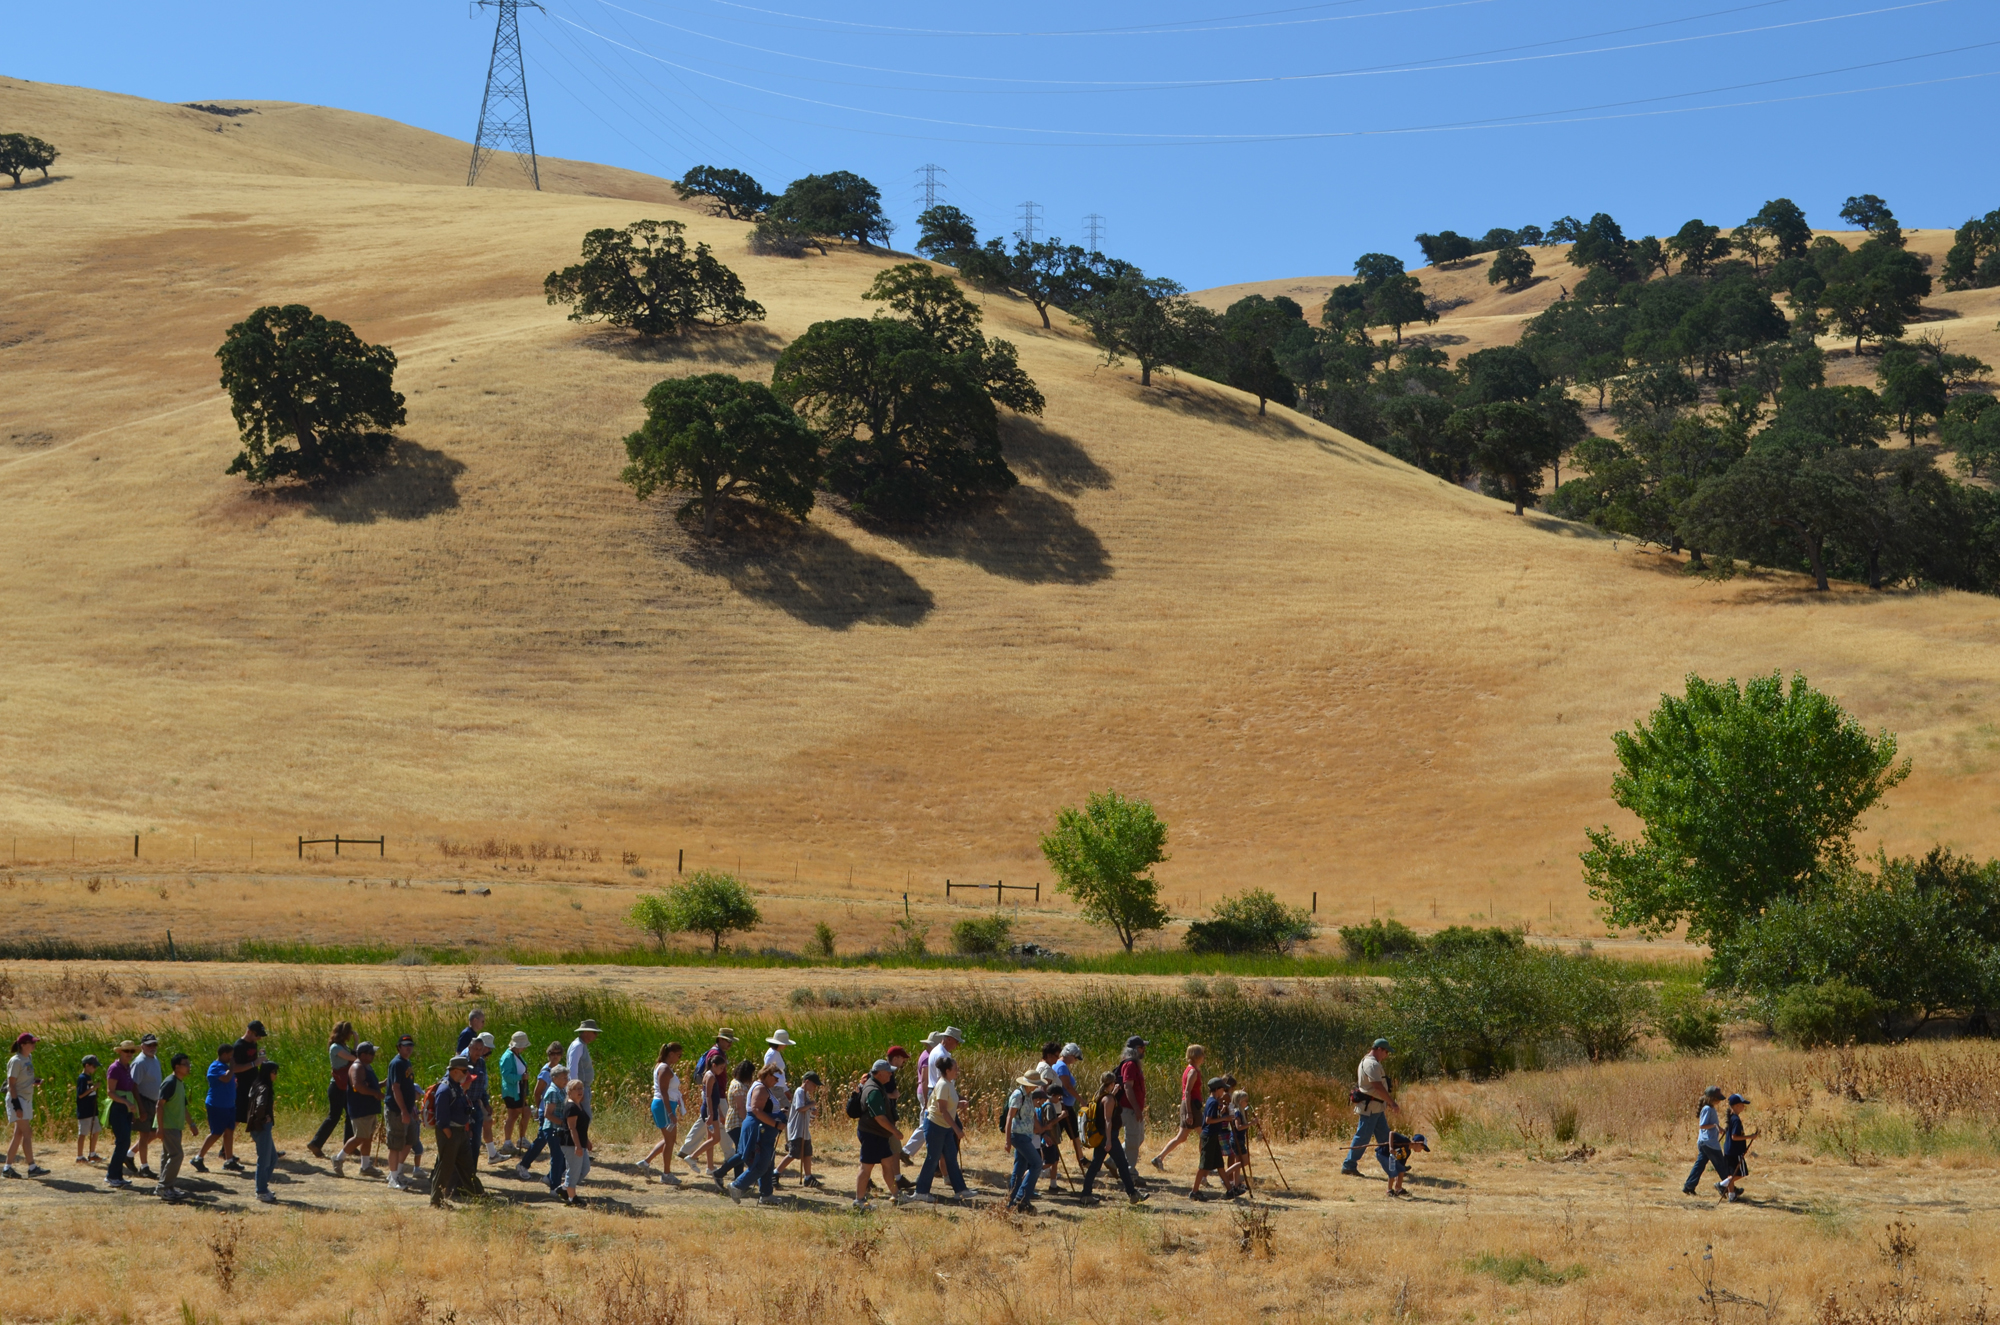 The first guided hike from the reopened John Muir